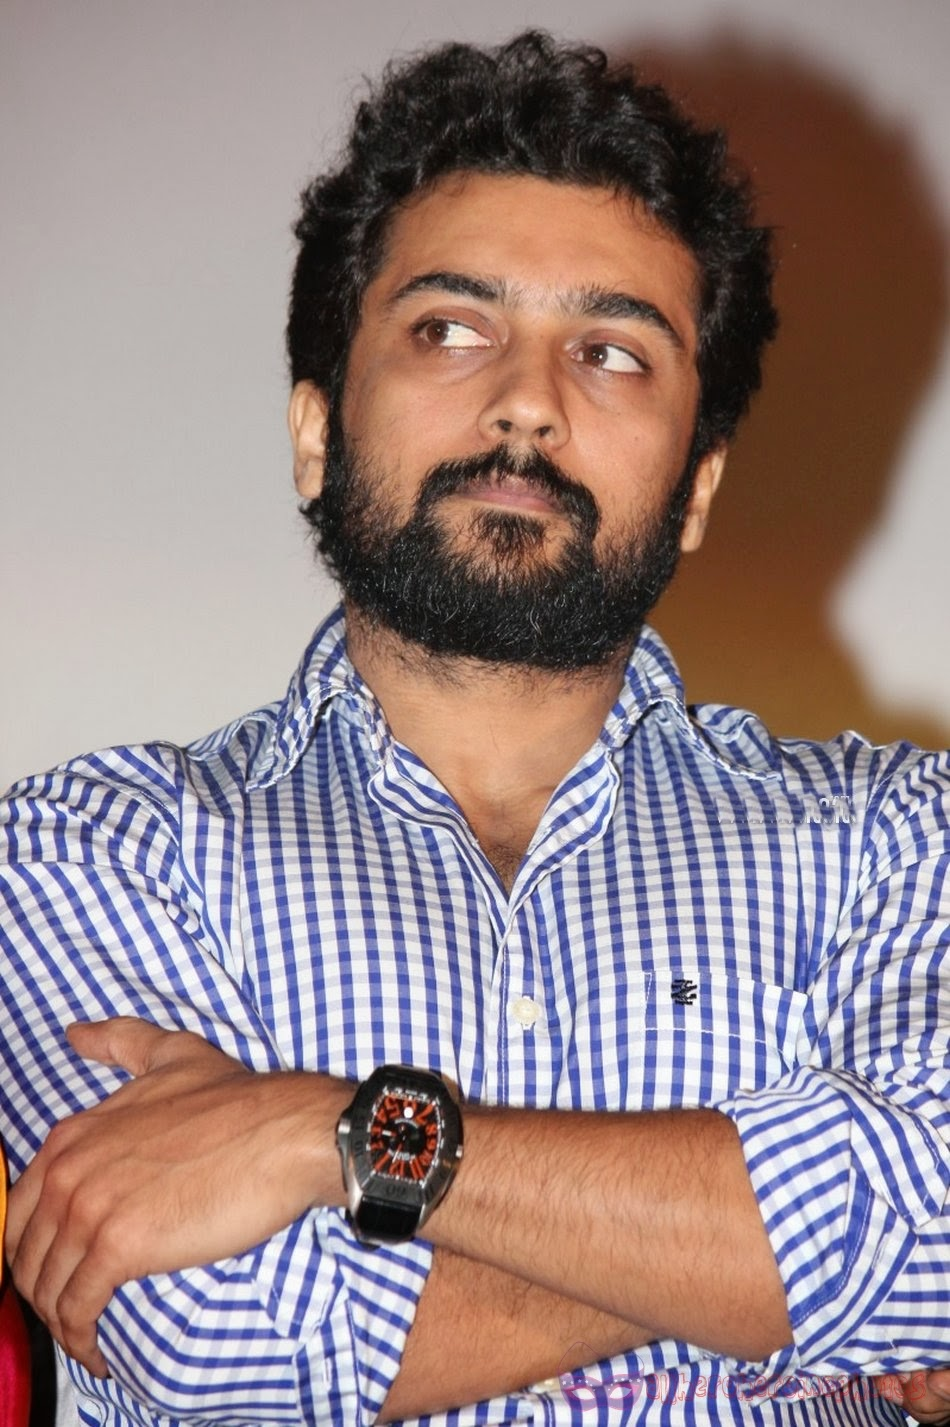 Latest tollywood movie updates gossips trailers videos mp3 surya exclusive hd photos surya latest pics surya latest photos surya latest images altavistaventures Images